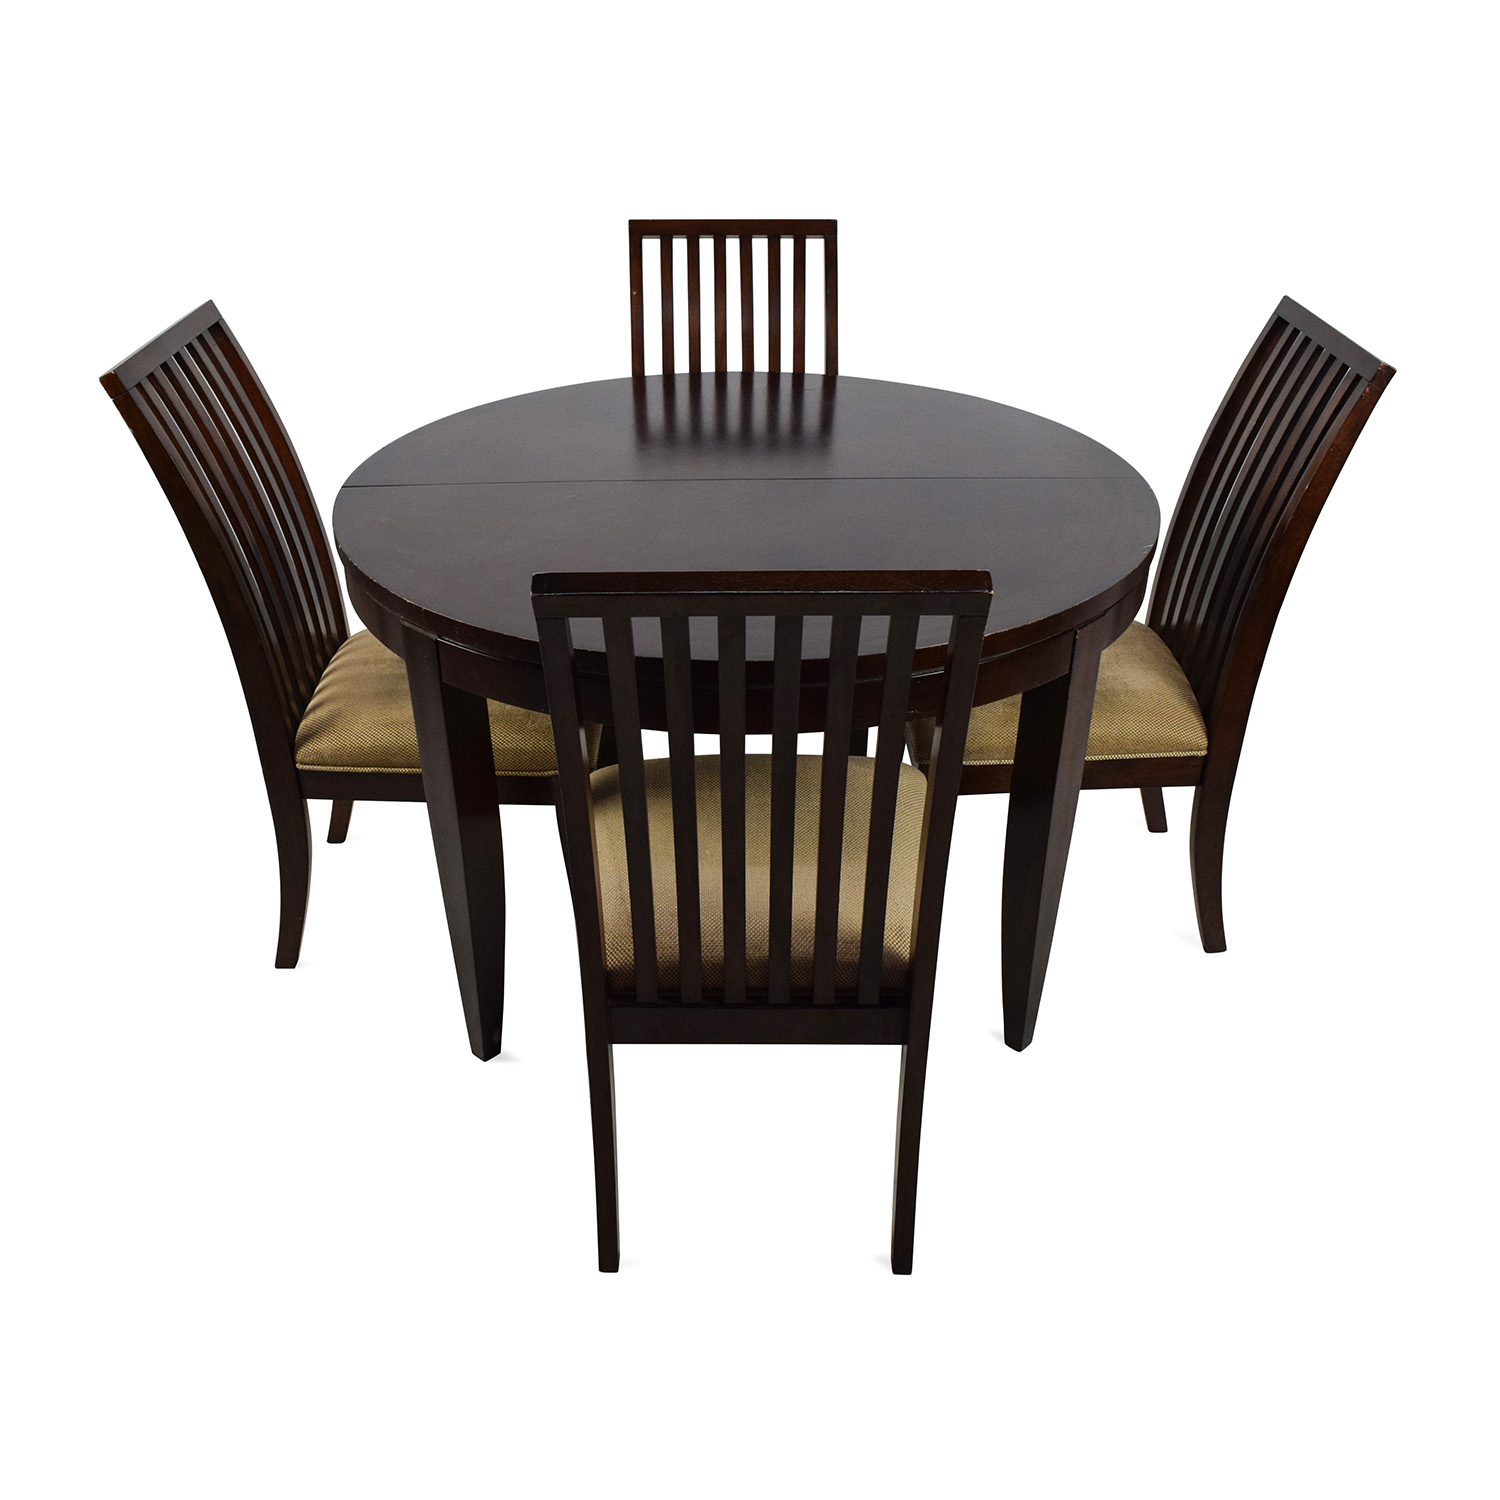 Macys Bradford Extendable Dining Table with 4 Chairs Macys